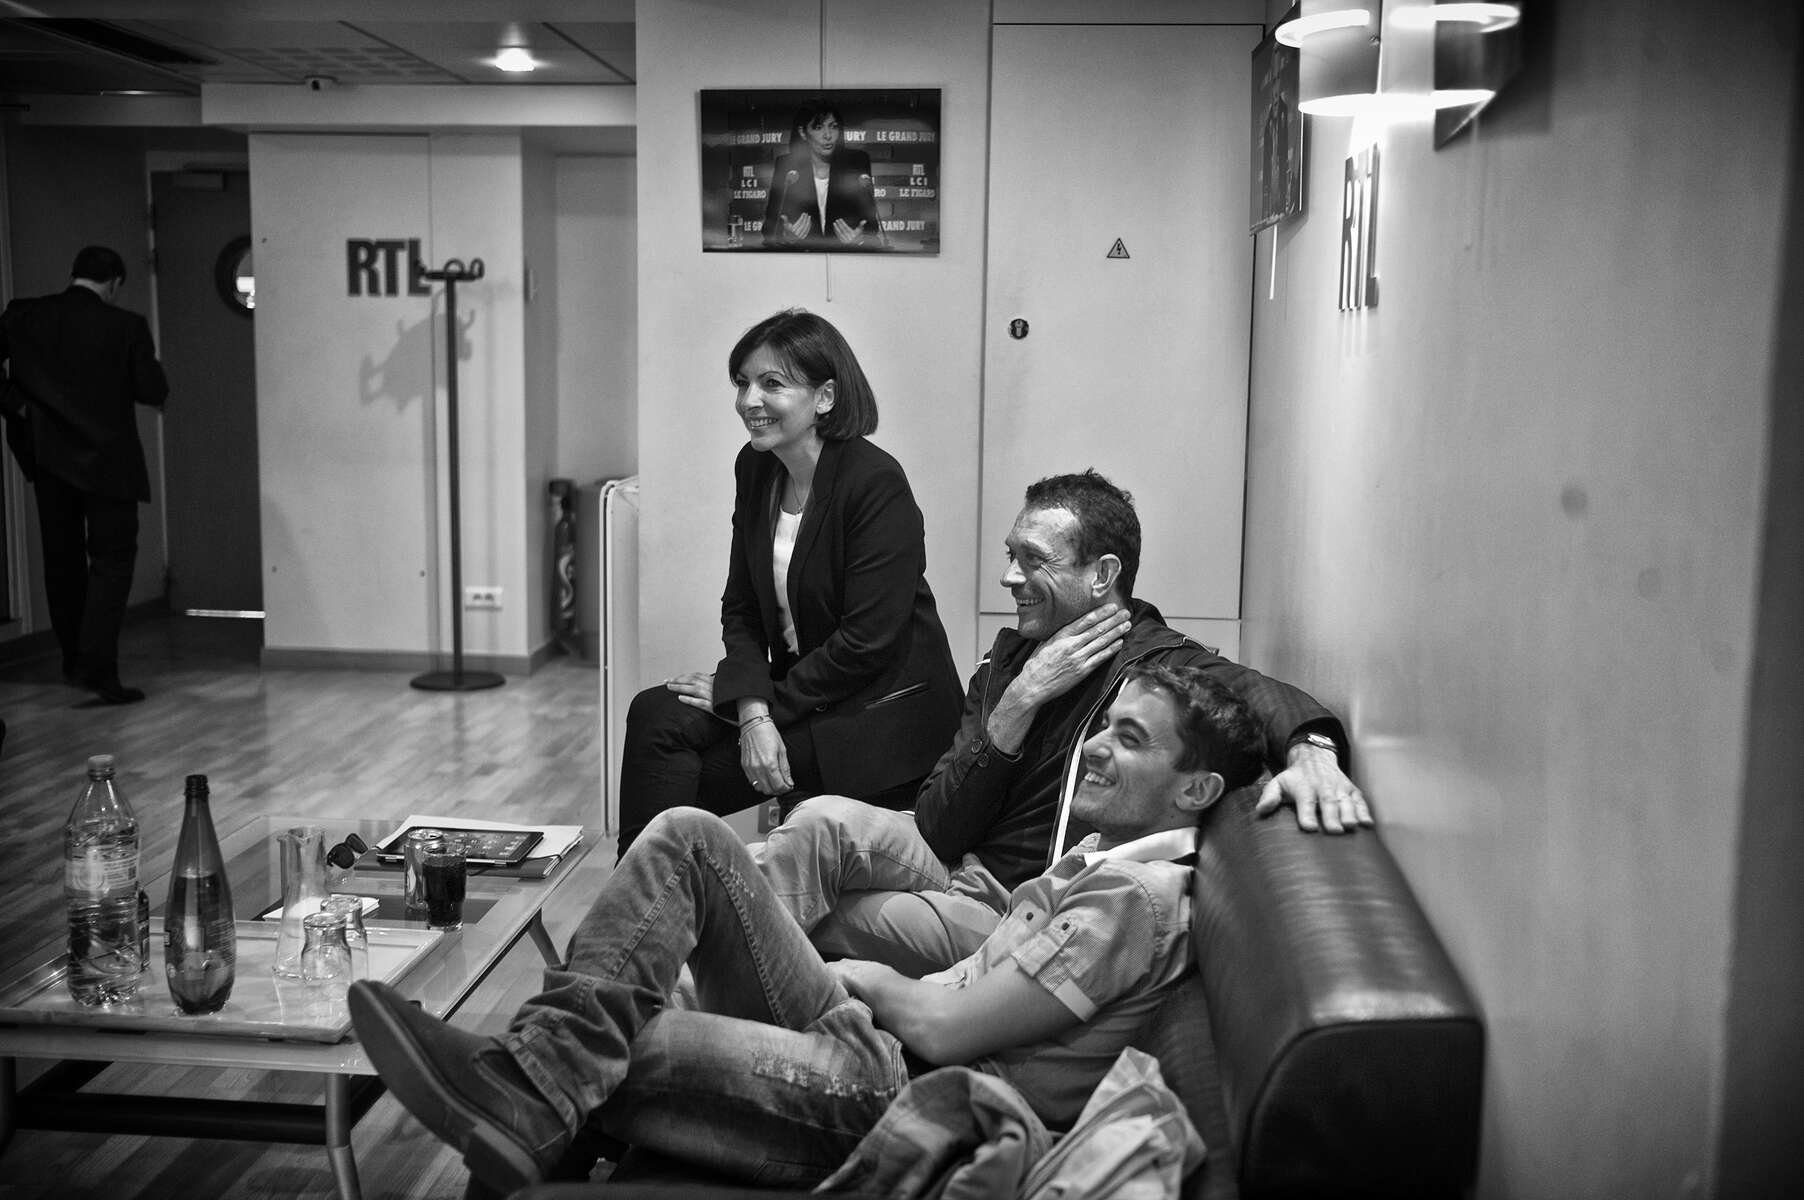 March 10, 2014.  PARIS, FRANCE- Mayoral candidate Anne Hidalgo watches her opponant, Nathalie Kosciusko-Morizet appear on RTL's Le Grand Jury, as she and her team wait backstage for her turn to be interviewed.  For the first time in France's history, Paris will have a woman as a mayor - either Socialist Anne Hidalgo or Center-Right Nathalie Kosciusko-Morizet.  Photo by Scout Tufankjian